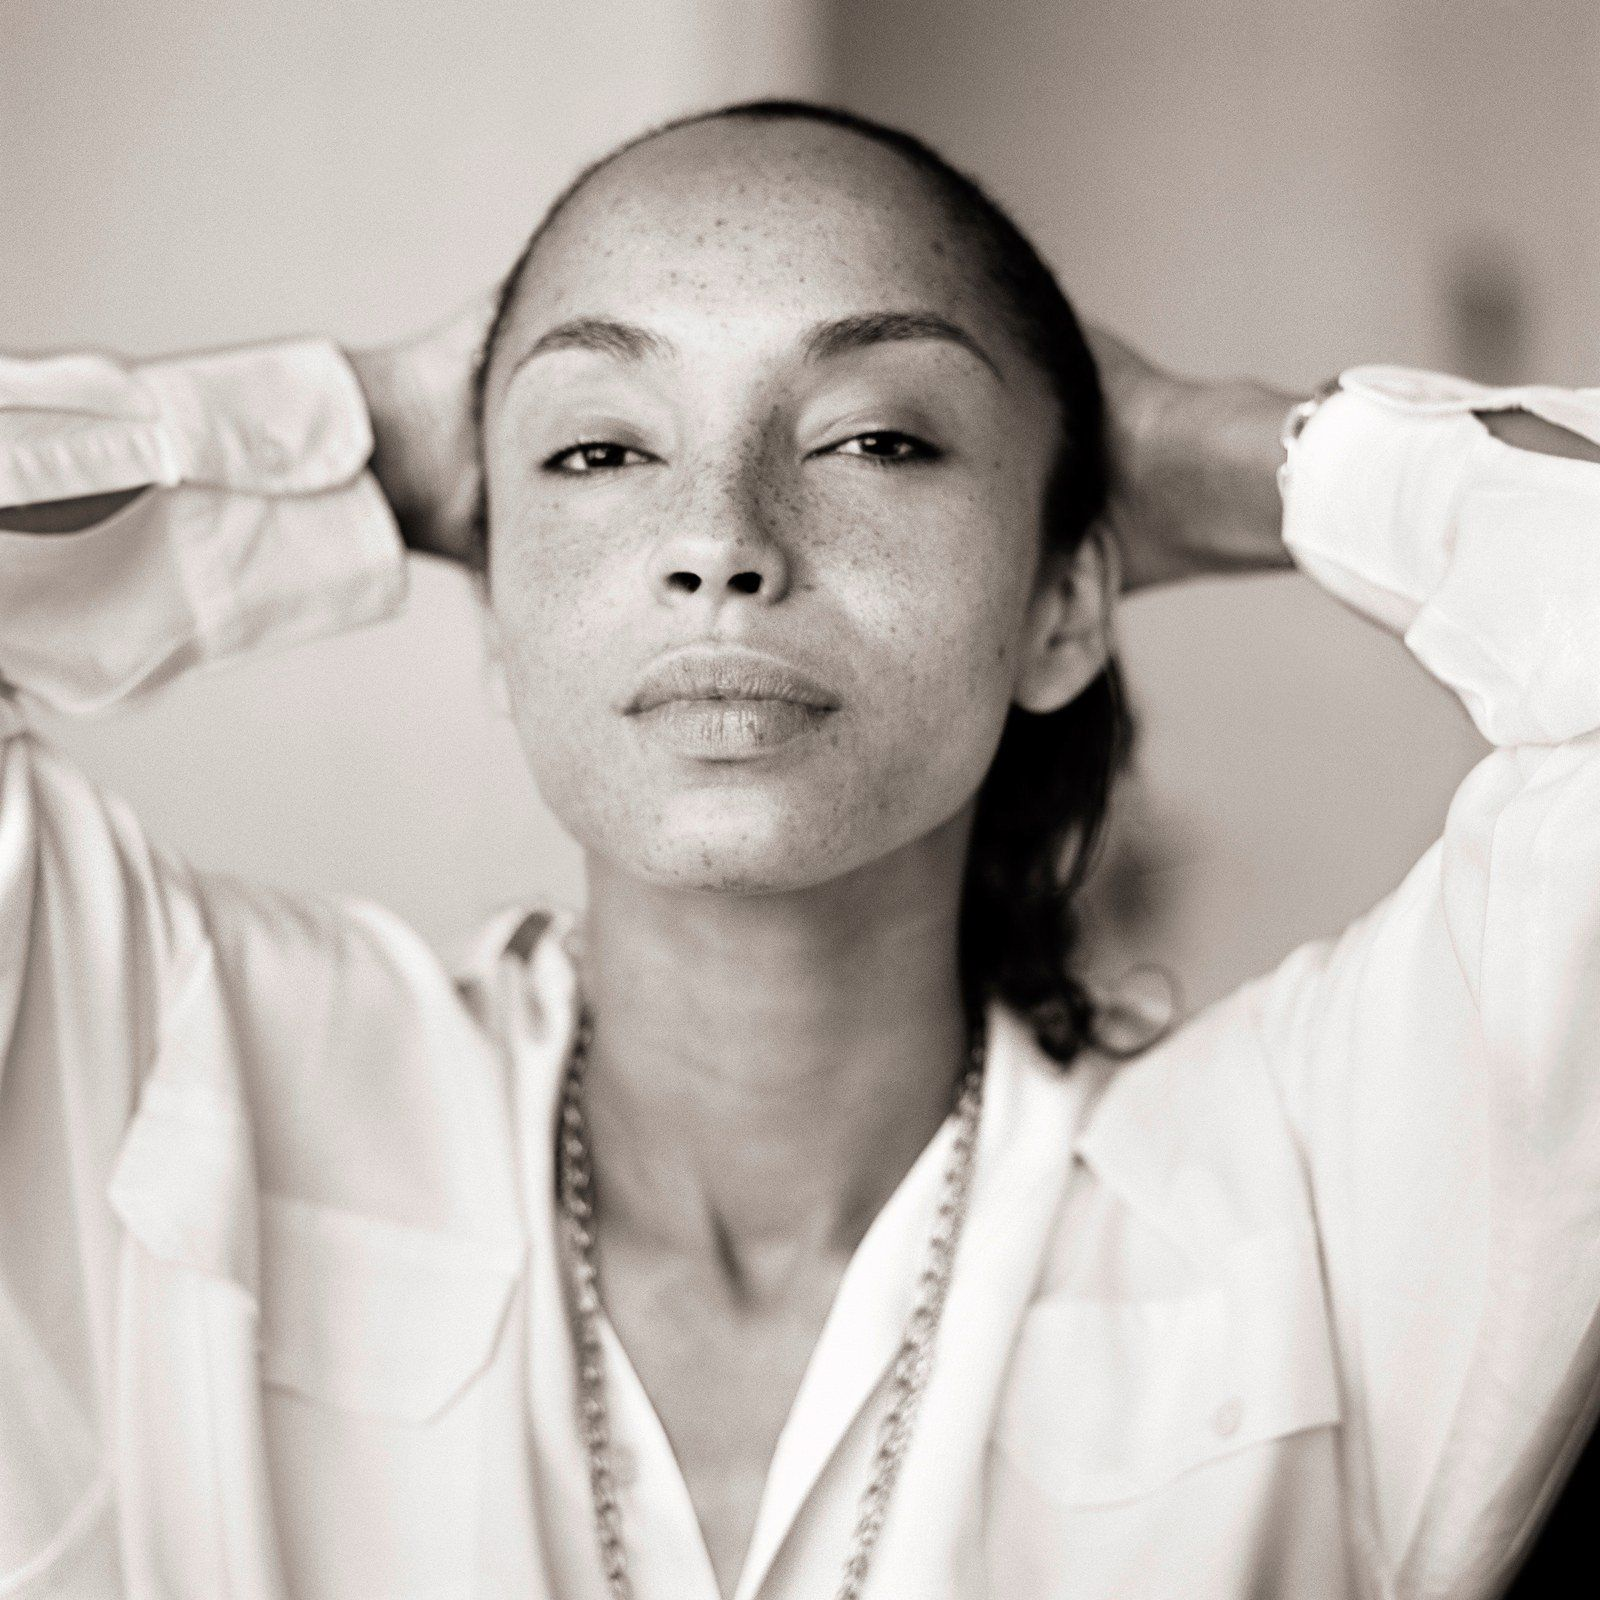 Sade Adu posted on Instagram: To feature your Sade Tees